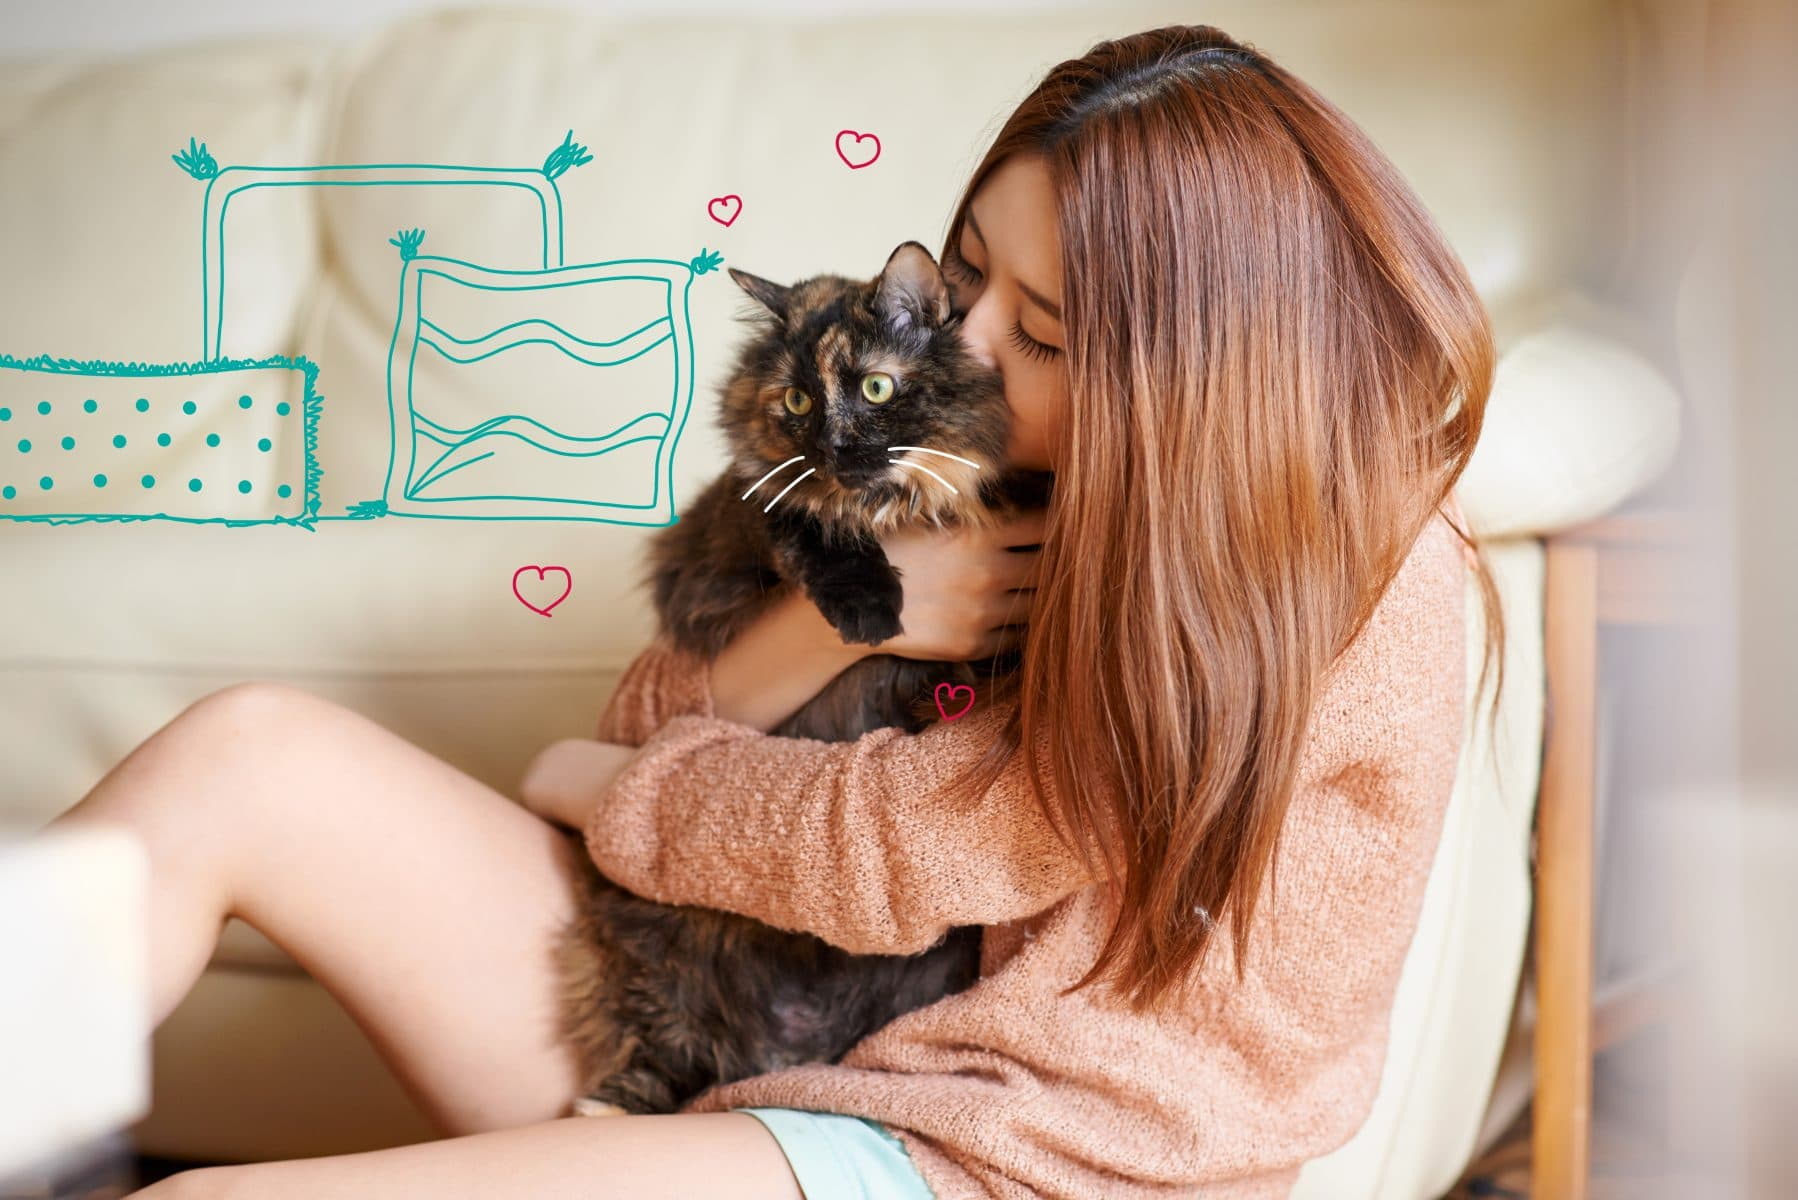 Cat confidence - A lady cuddles her cat.